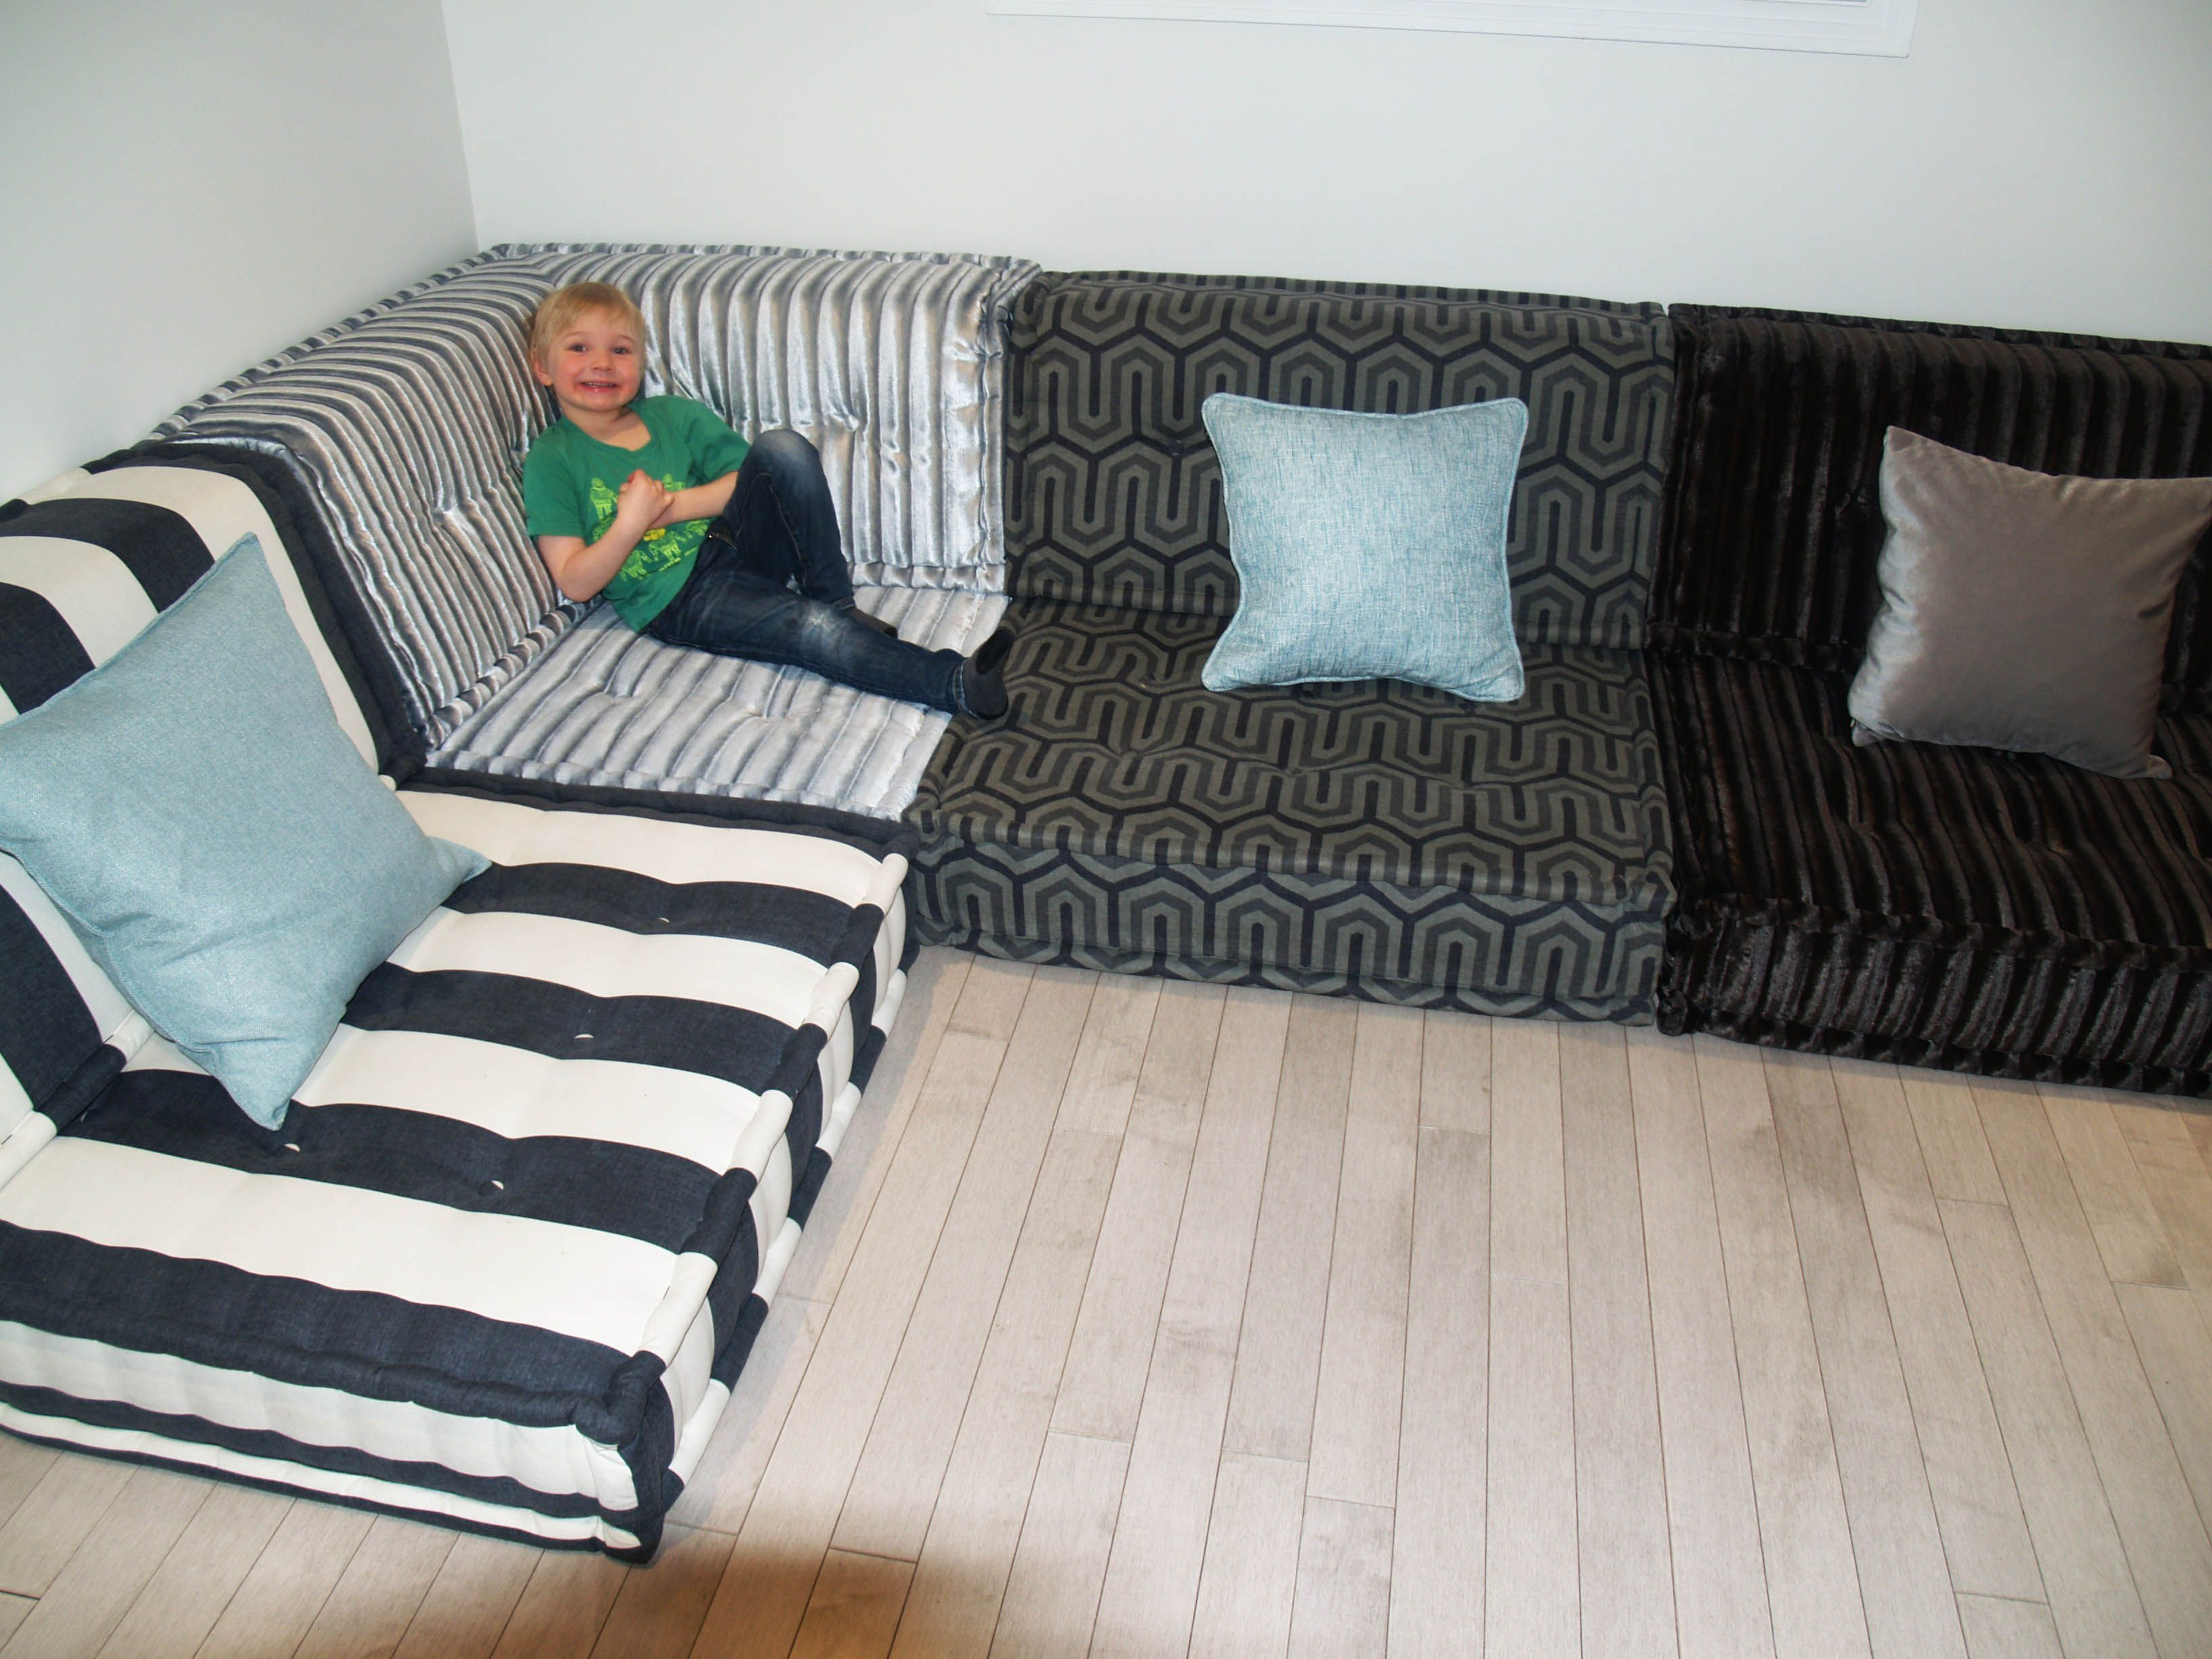 SOF CRAFT QUBEC CANAD Our Sofa In Quebec Canad With A